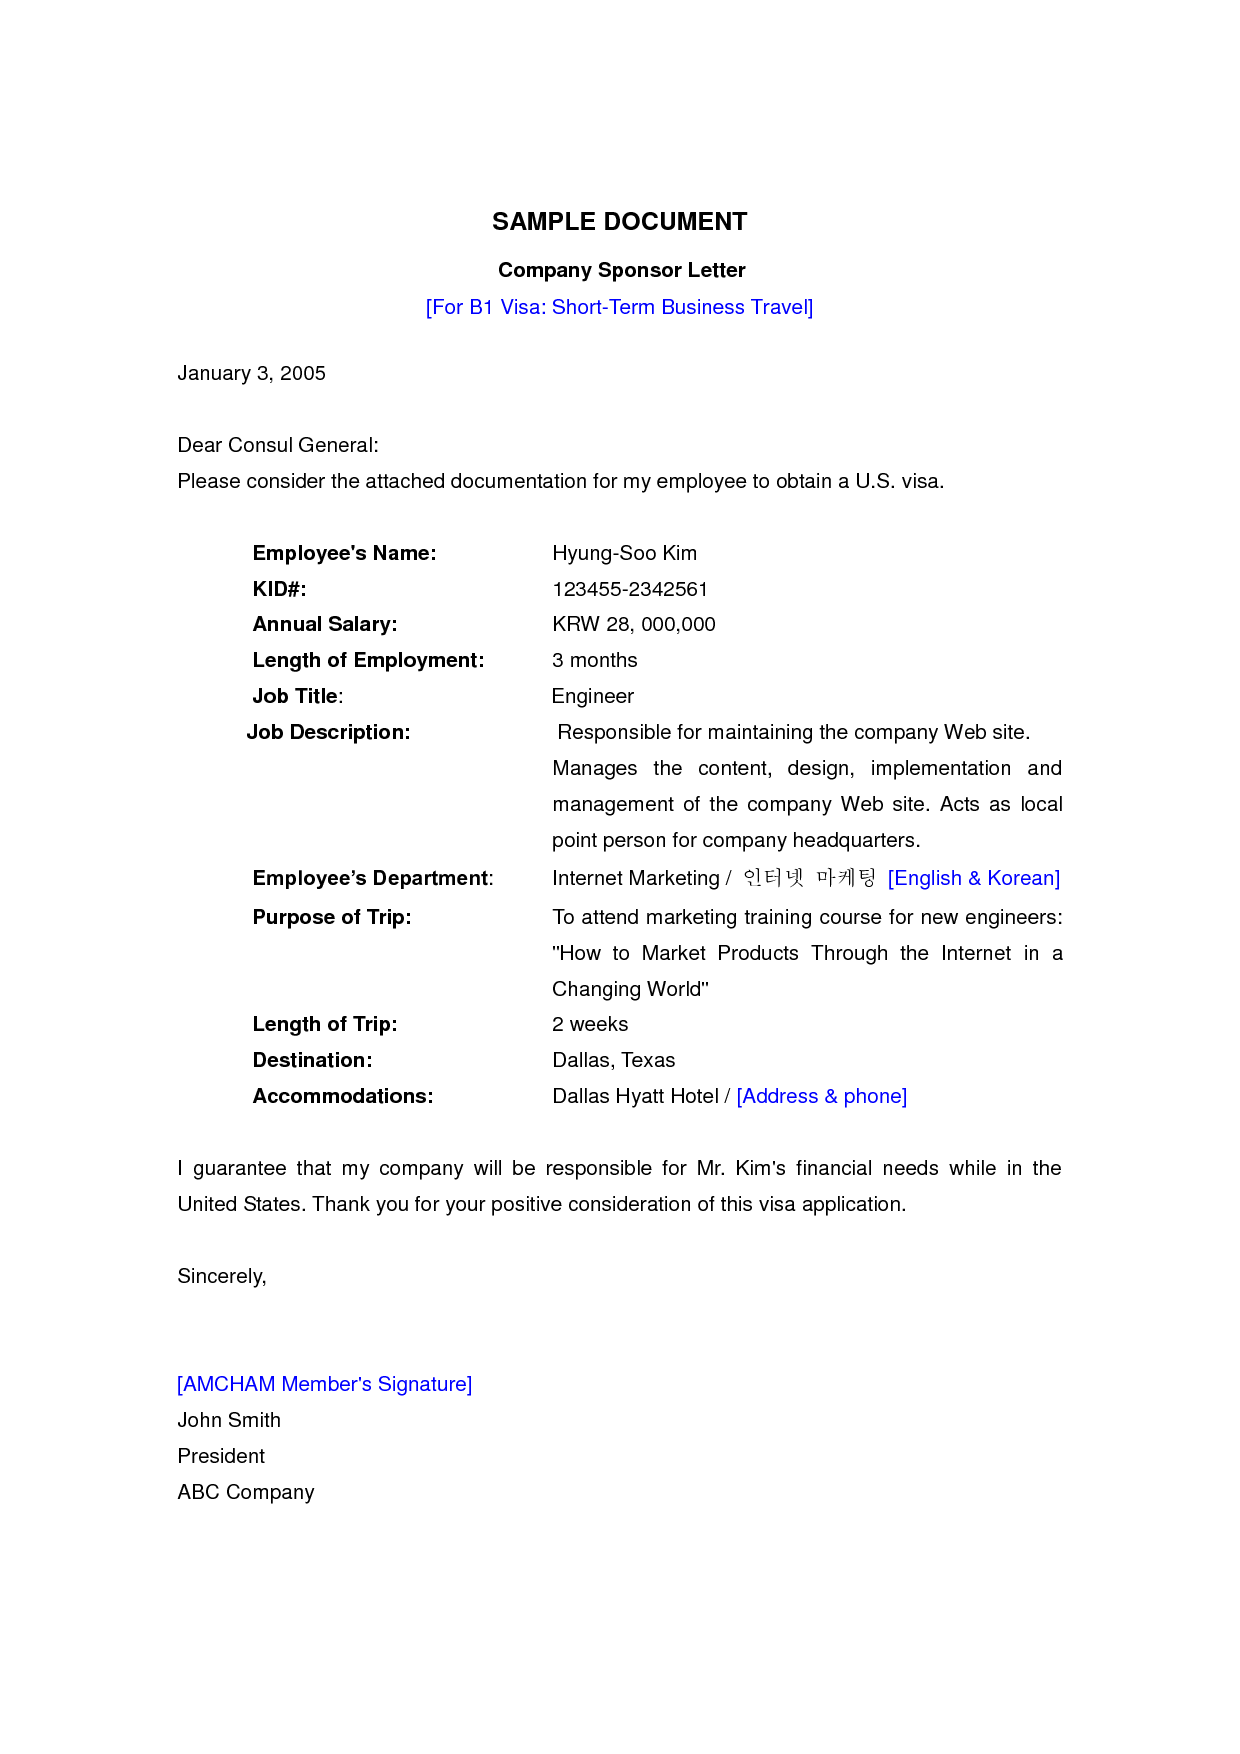 Visa application letter uk sample fast online helpvisa for Consul templates